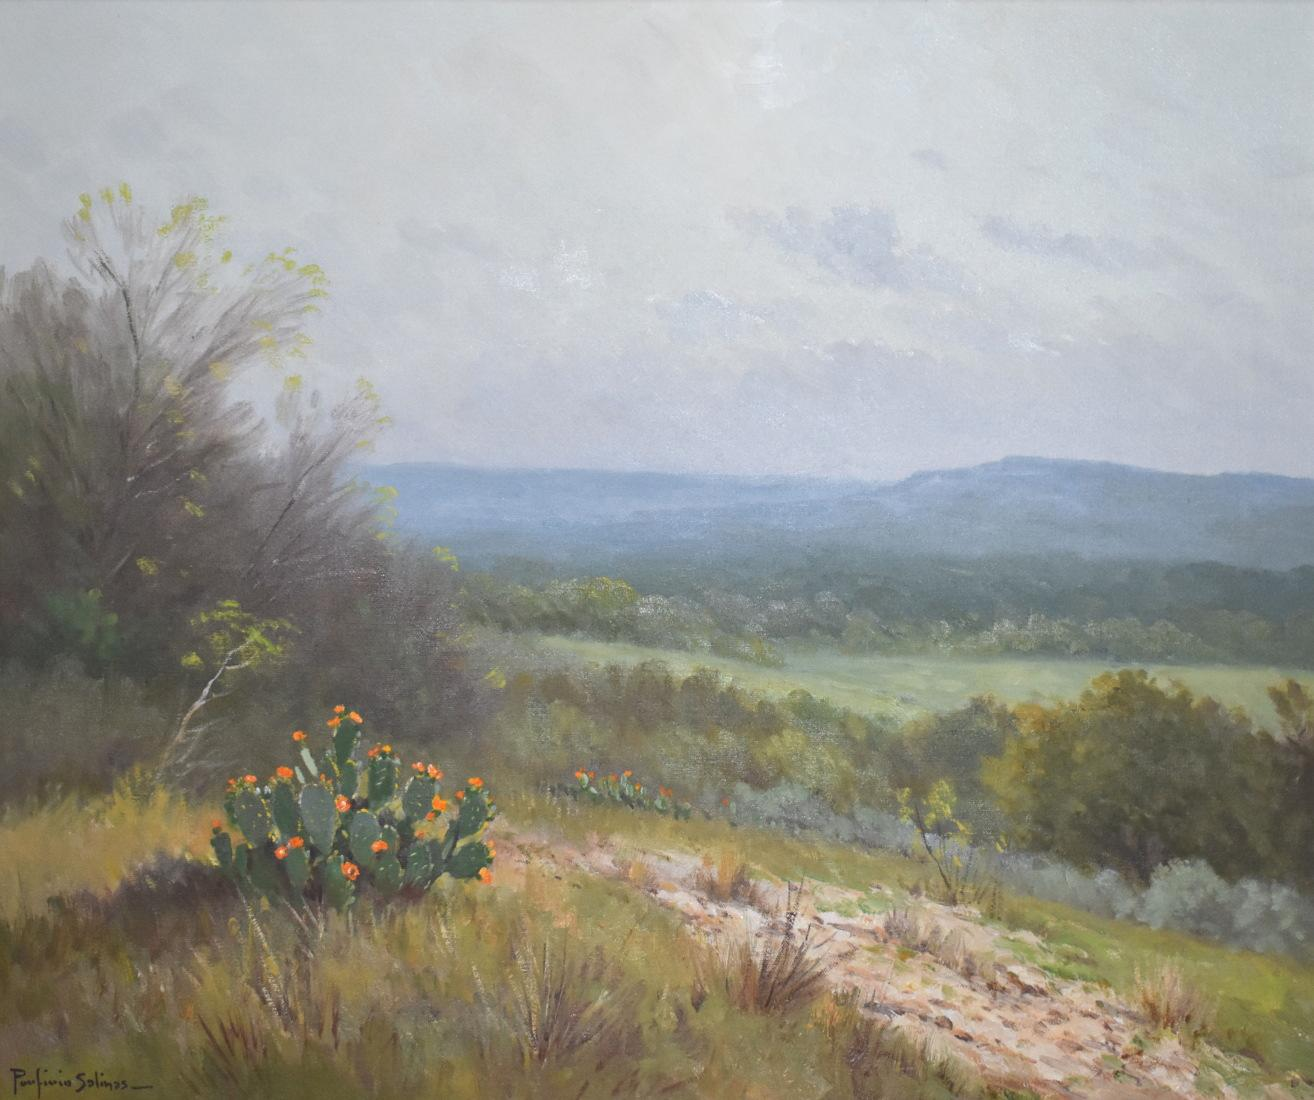 """""""Blooming Prickly Pear Cactus""""  Texas Hill Country Landscape"""